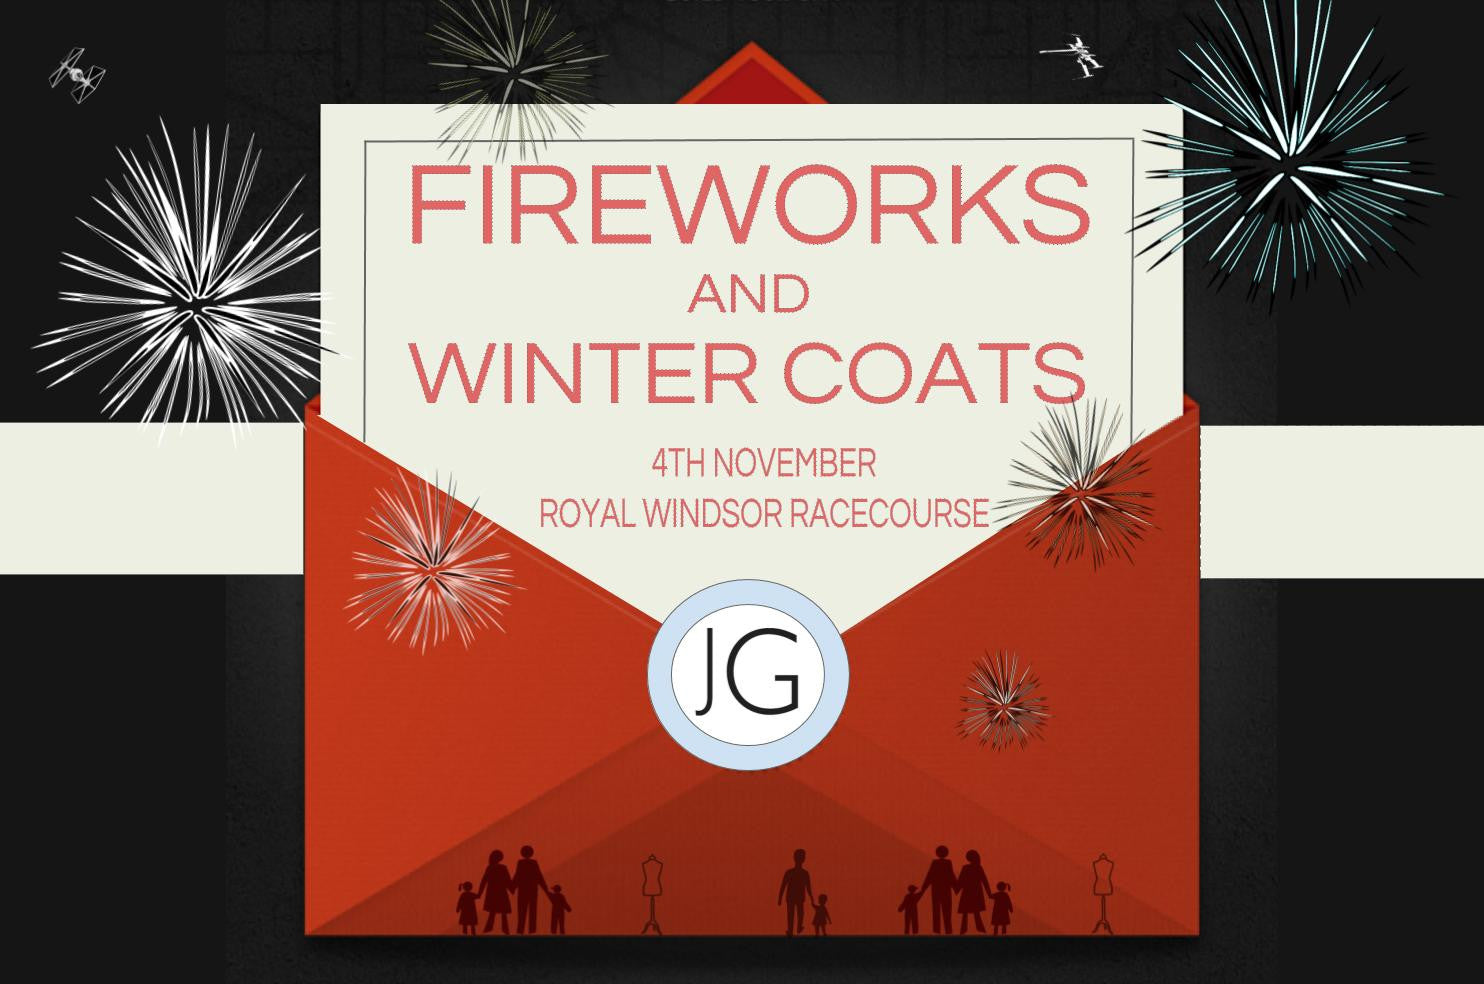 John Goodwin Fireworks & Winter Coats Drinks Reception